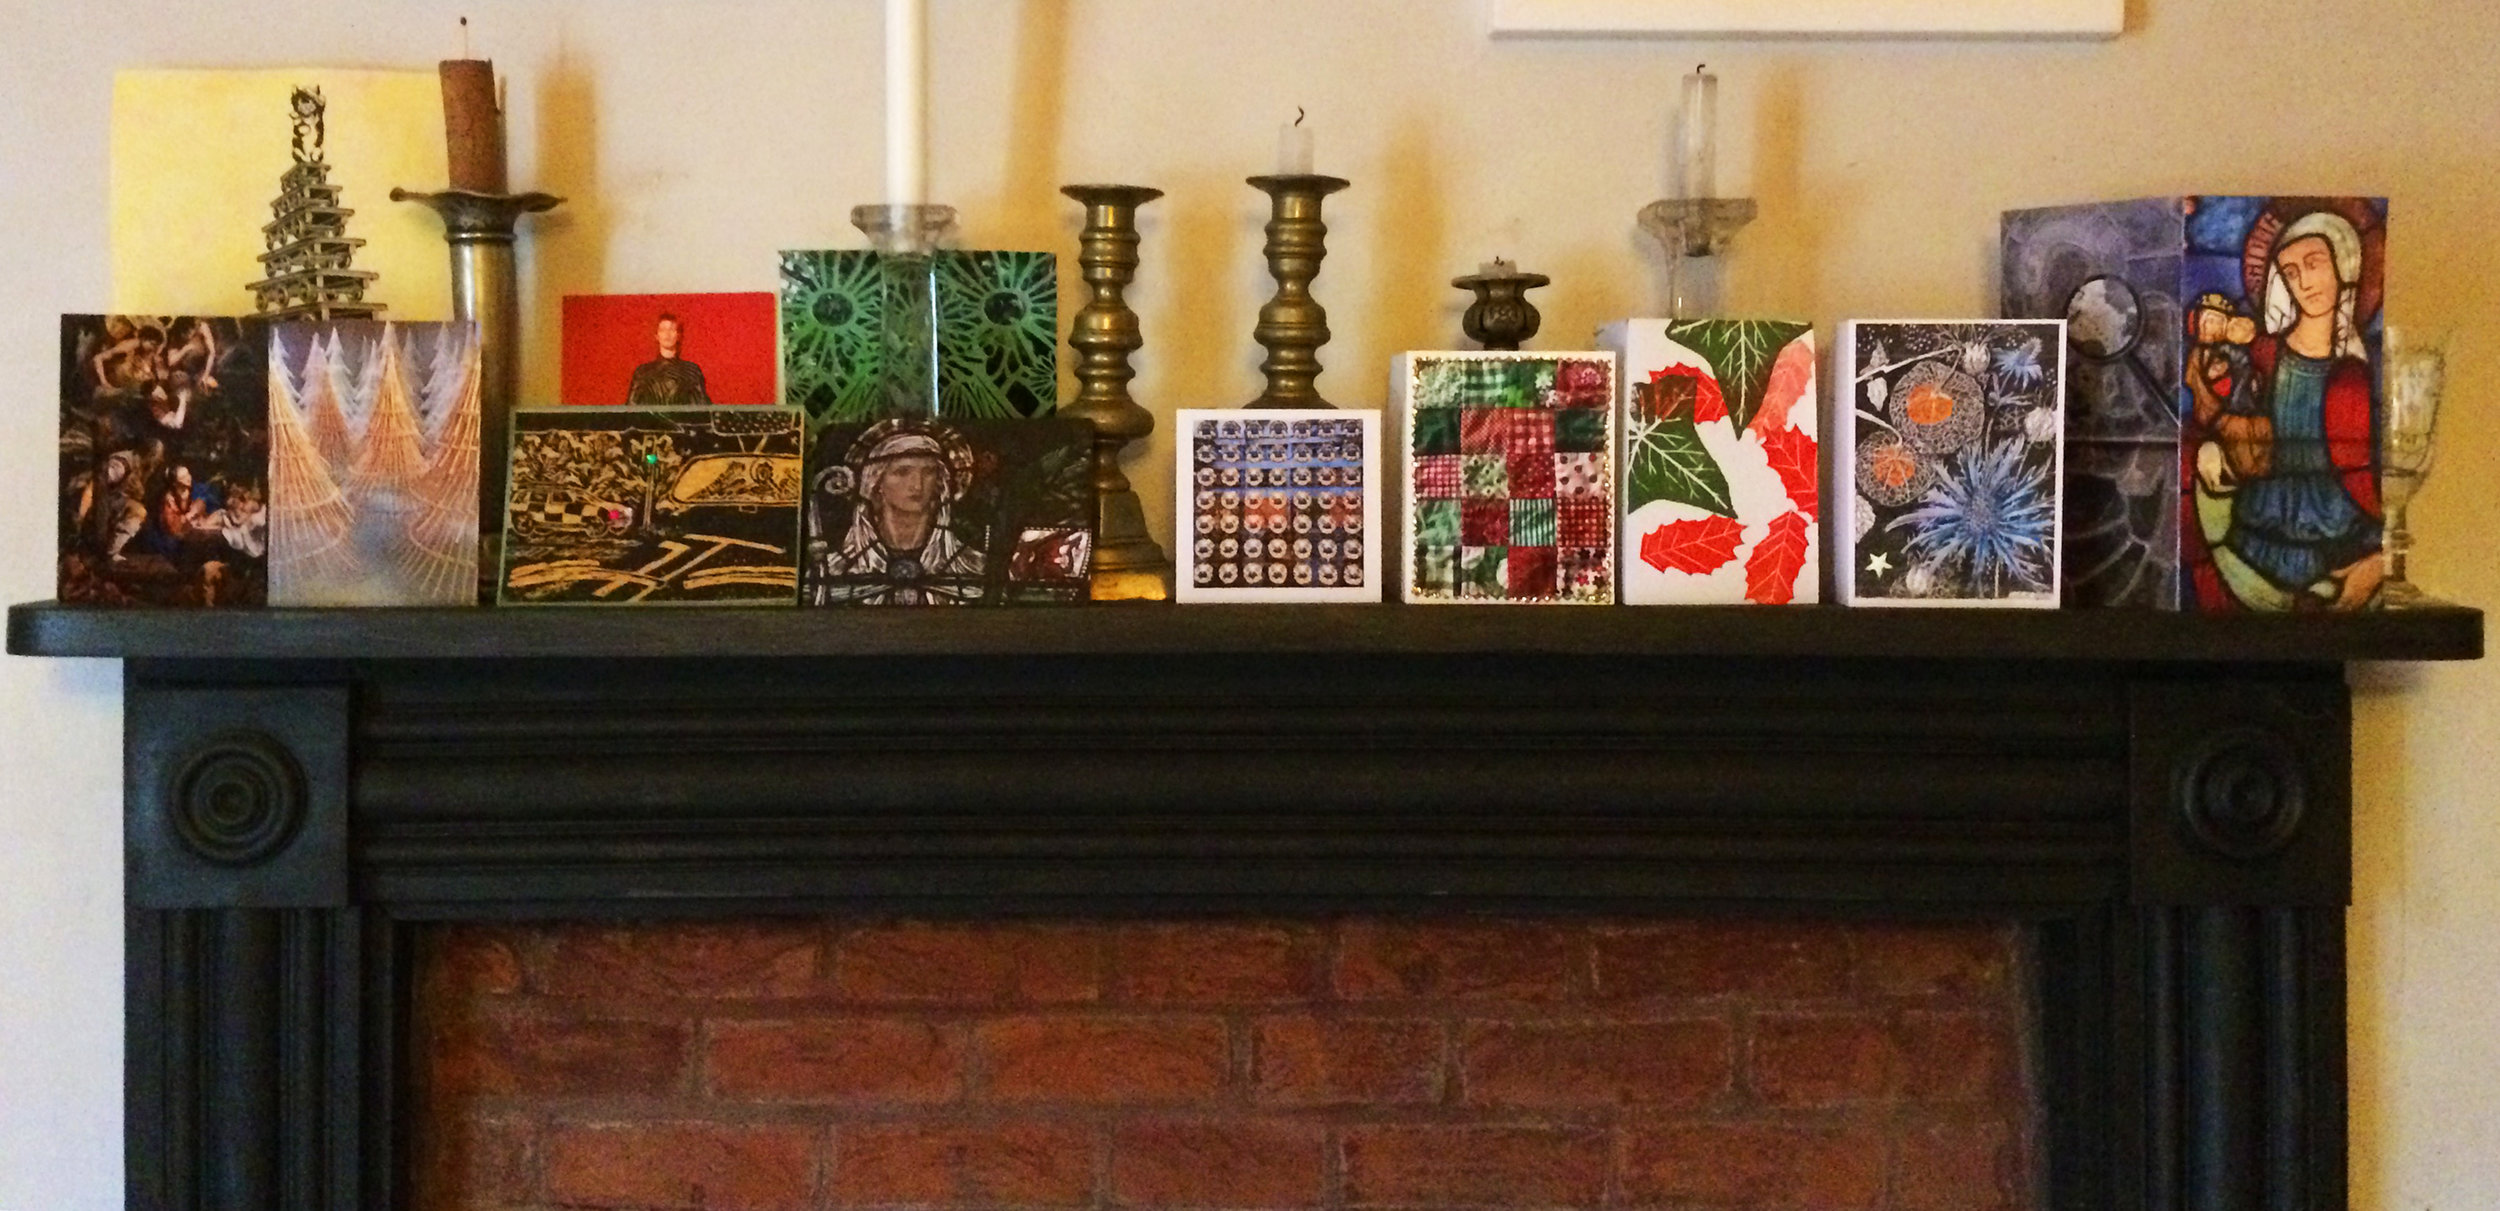 My favourite cards on the mantlepiece, particularly the patterned ones in the middle with seasonal colours and glitter! Click to enlarge.